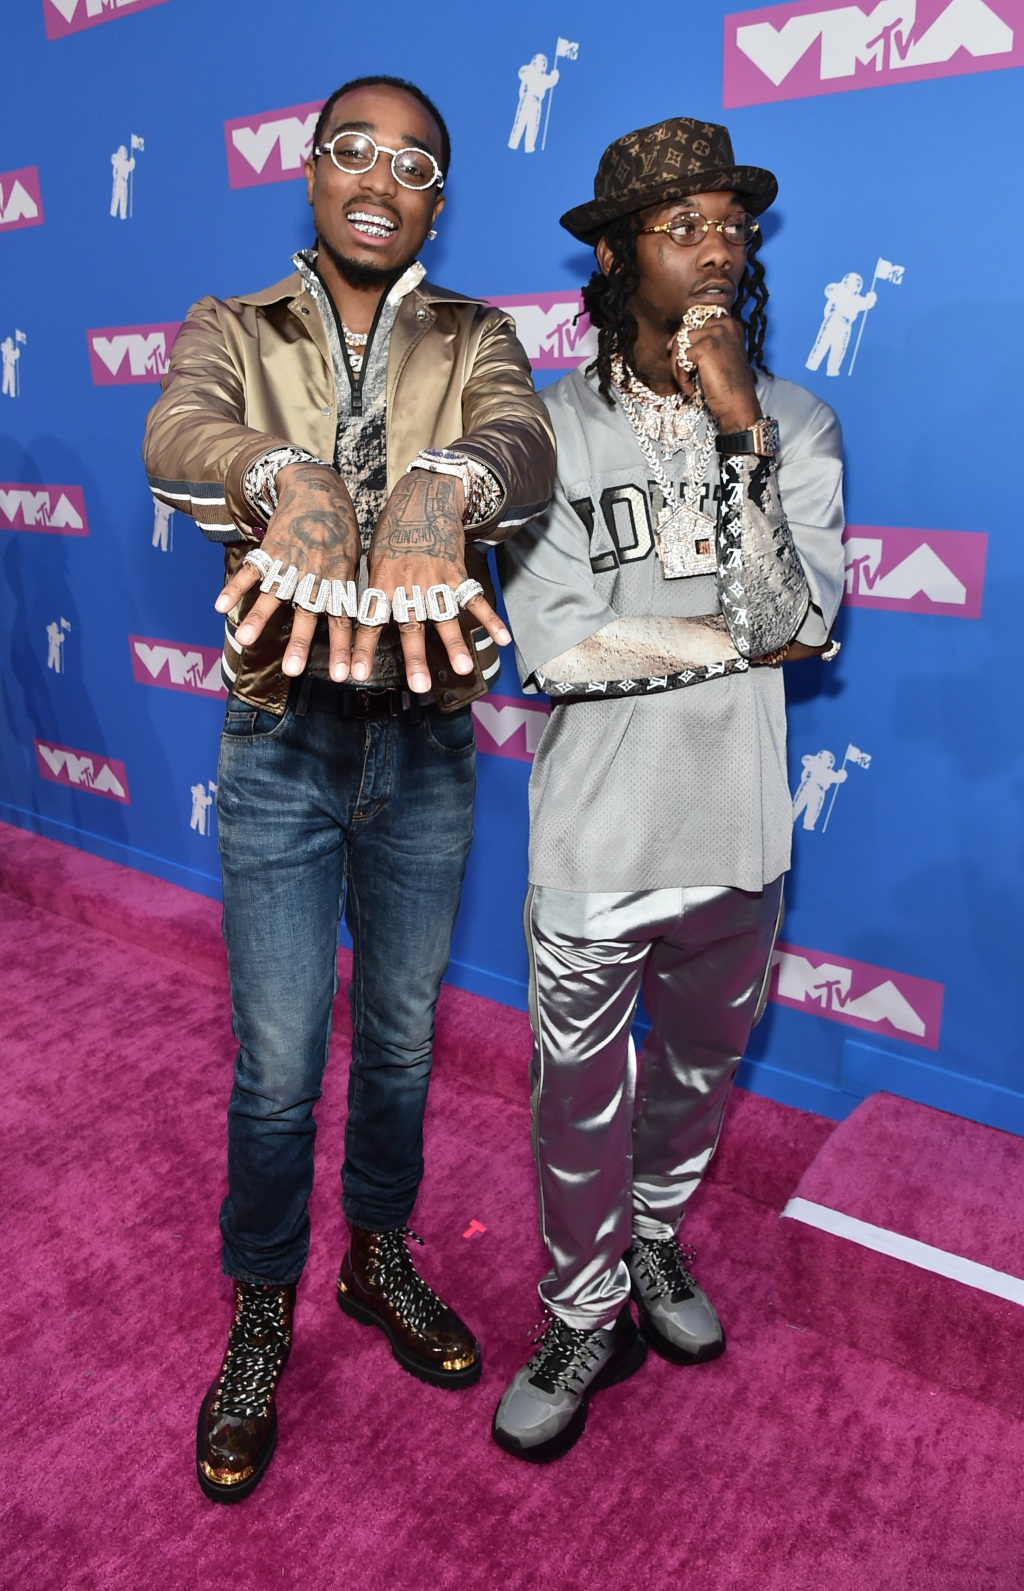 Quavo and Offset of Migos. (Photo by Mike Coppola/Getty Images for MTV)